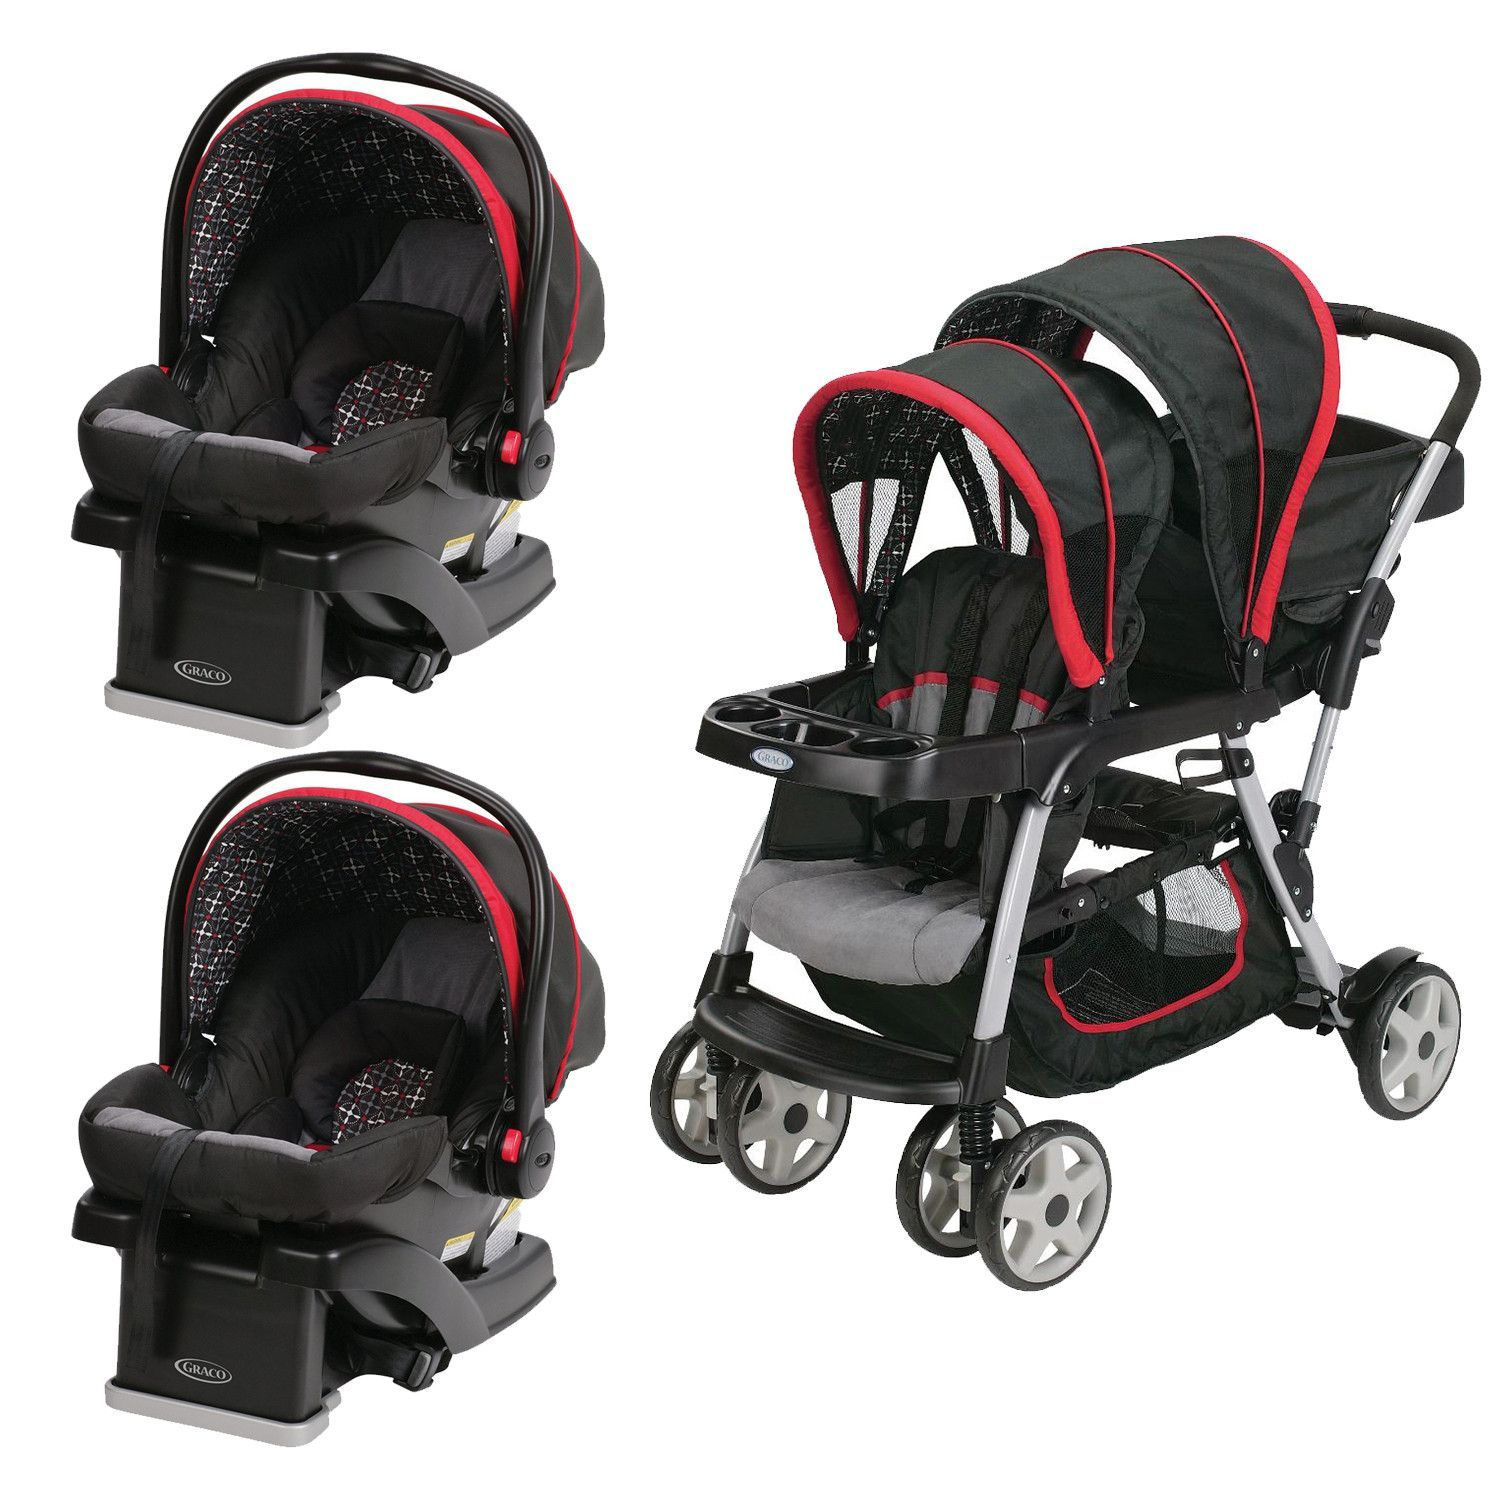 Graco Red Double Seated Twin Stroller and 2 Car Seats